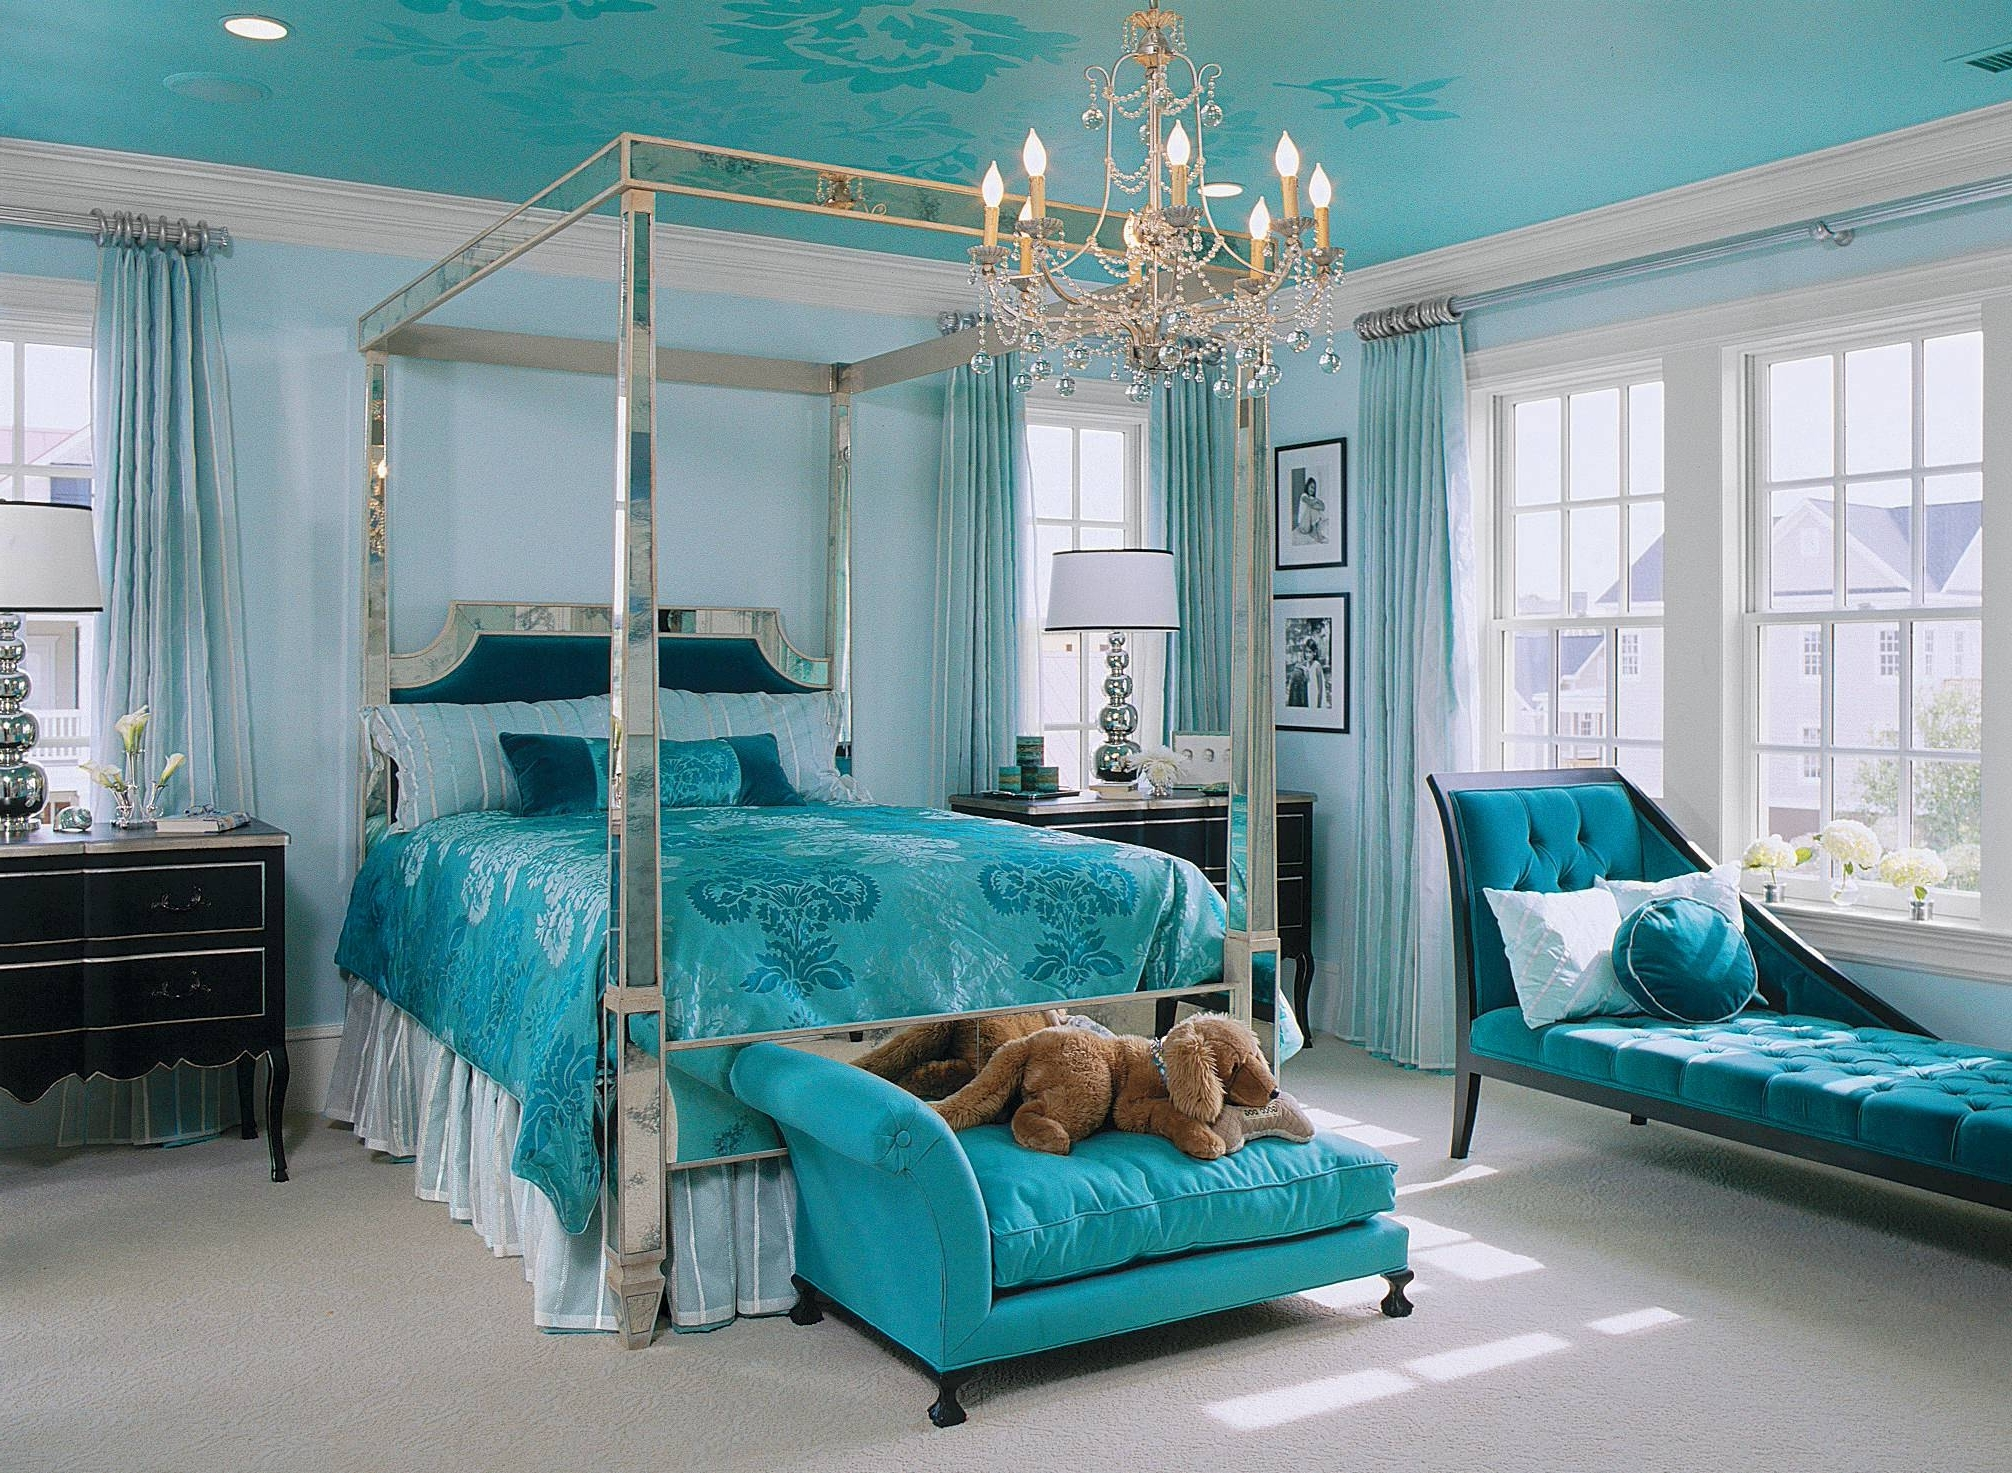 Most Current Turquoise Bedroom Chandeliers With Bedroom: Turquoise Room Ideas For Modern Bedroom Design Idea (View 9 of 15)